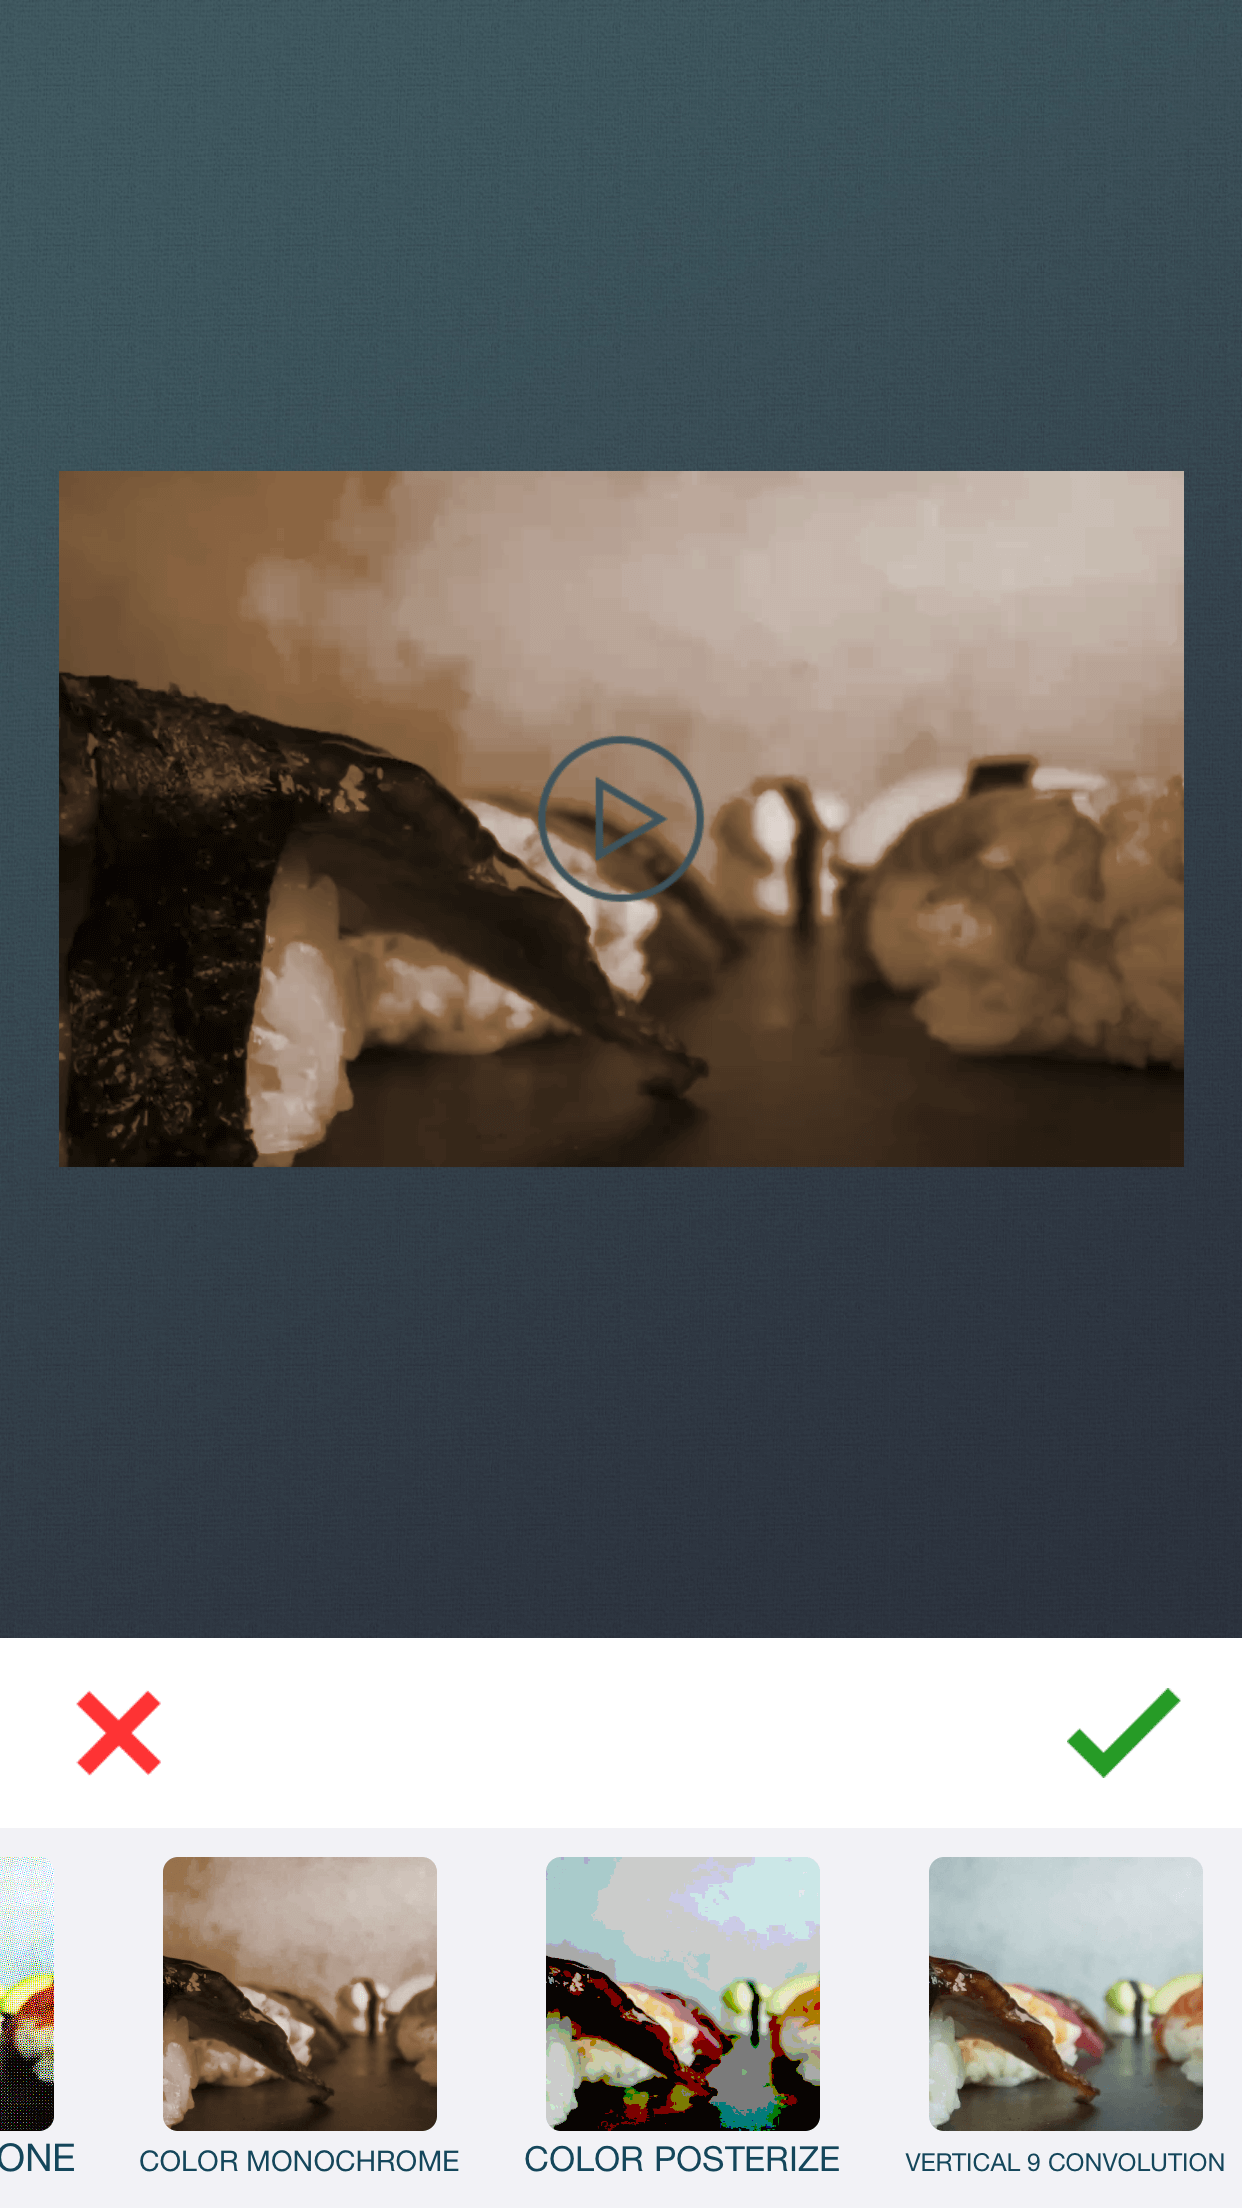 Add effects to video using zShot app.